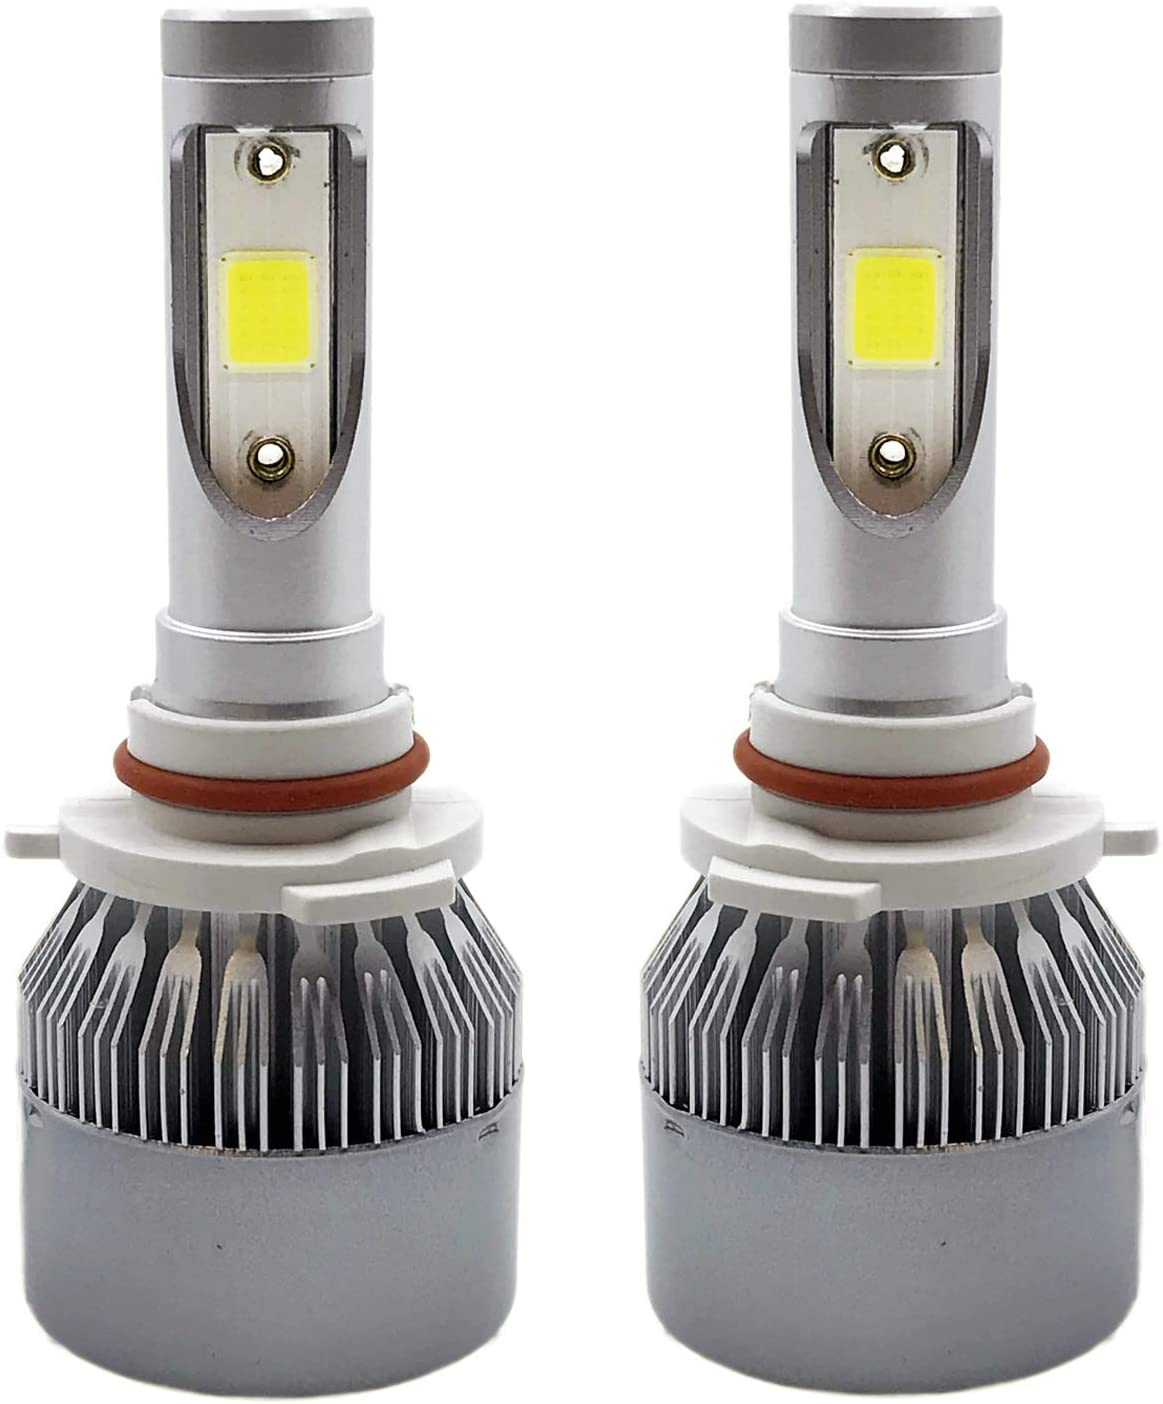 SOCAL-LED 2x C7 9005 (9145 H10) Headlight Bulbs LED Conversion Kit 72W 7600LM COB Chipsets, ALL-In-One, 6000K Crystal White